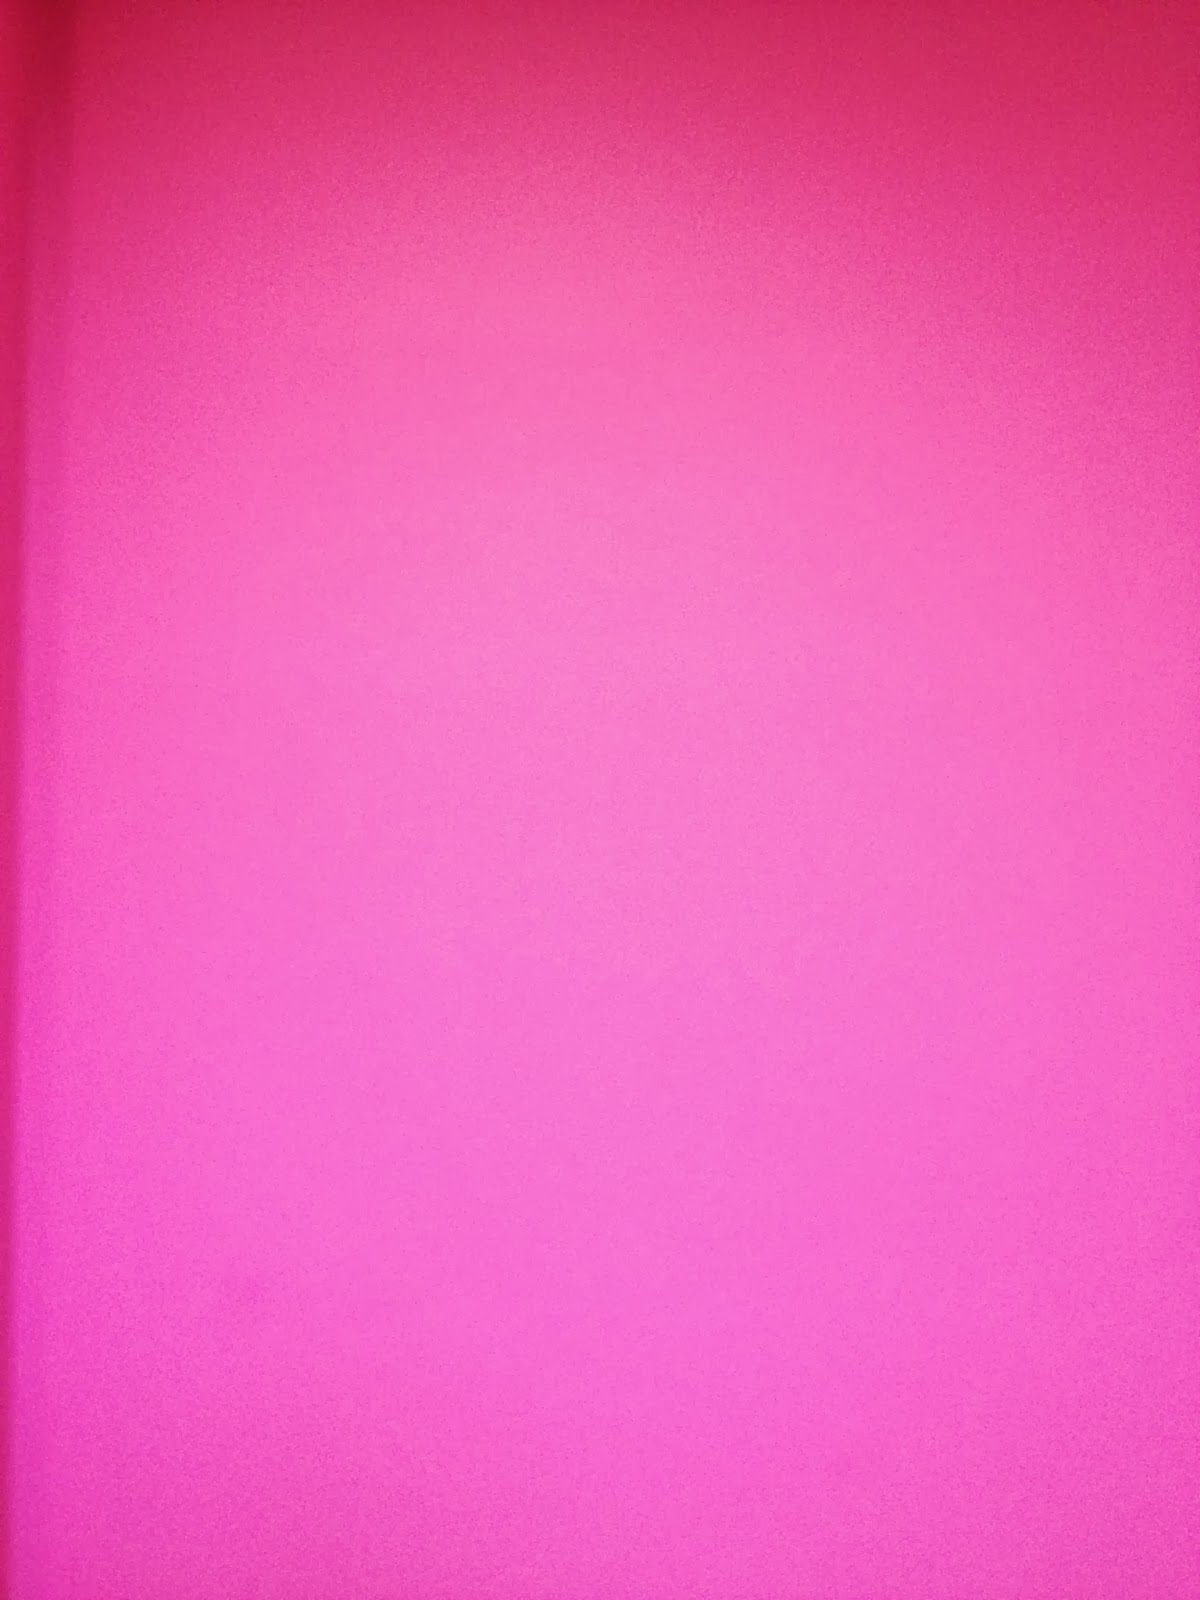 Top 28 Pink Walls Pink Painted Wall Texture Picture